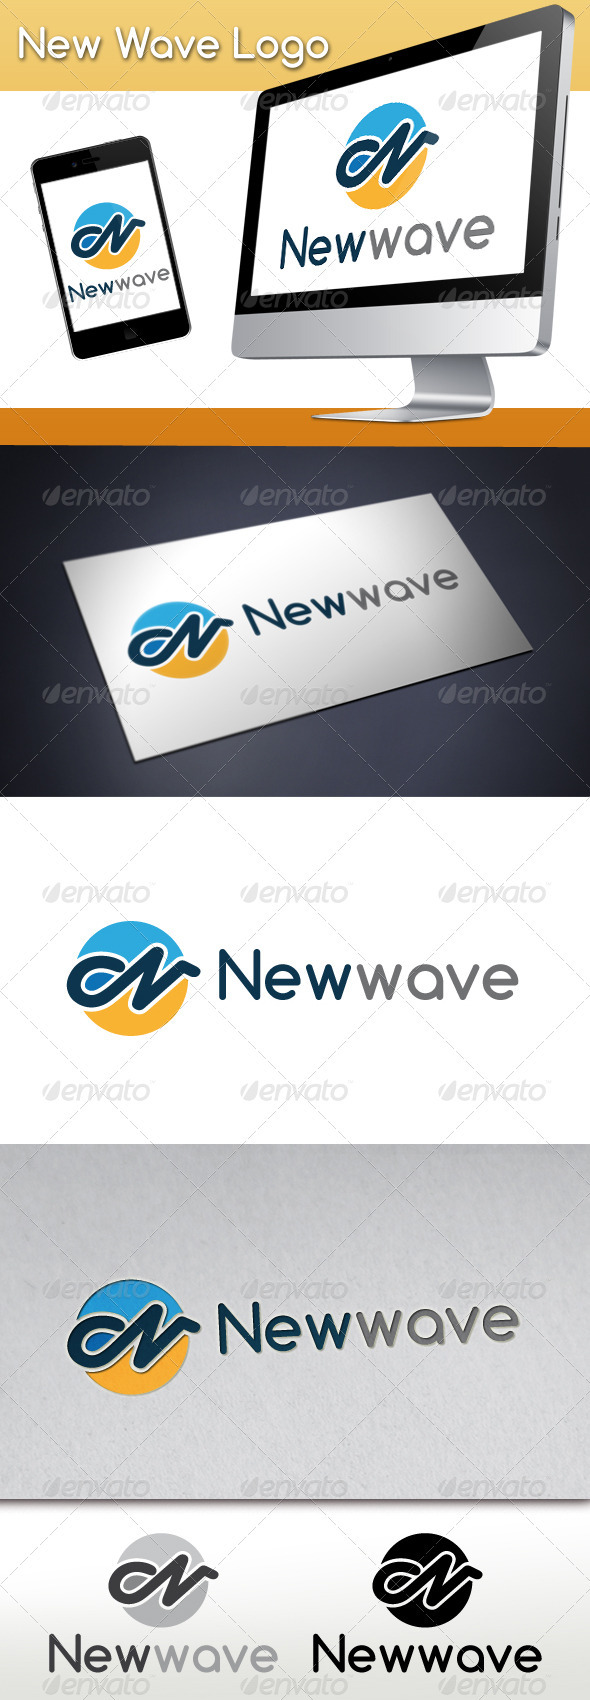 GraphicRiver New Wave Logo 3429771